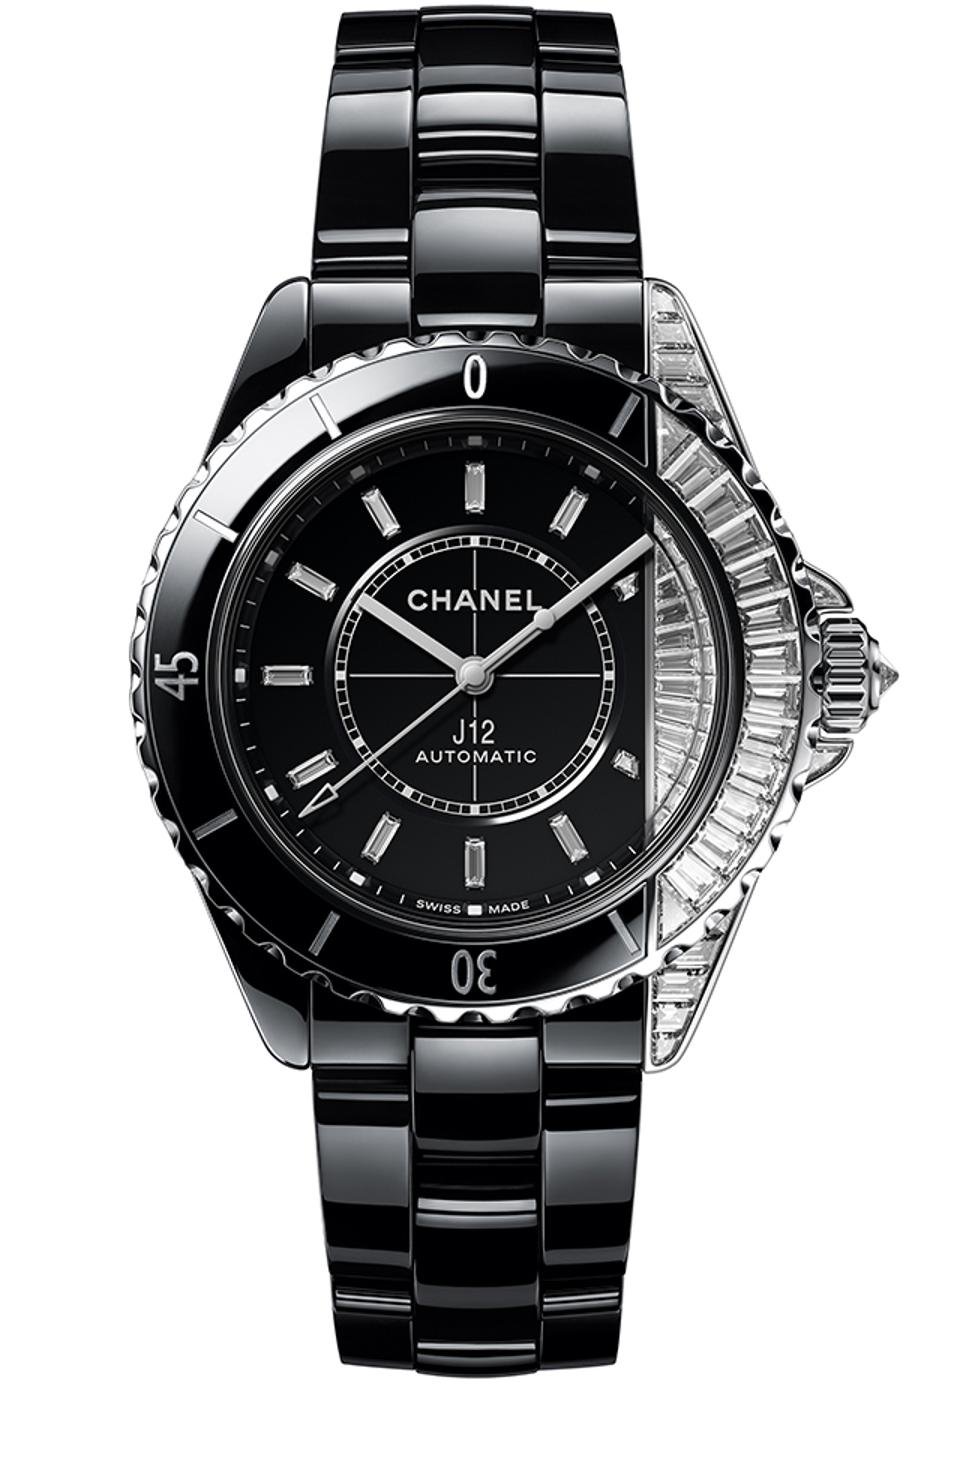 The Chanel J12 Paradox, with a case made of part black ceramic and part baguette diamonds.